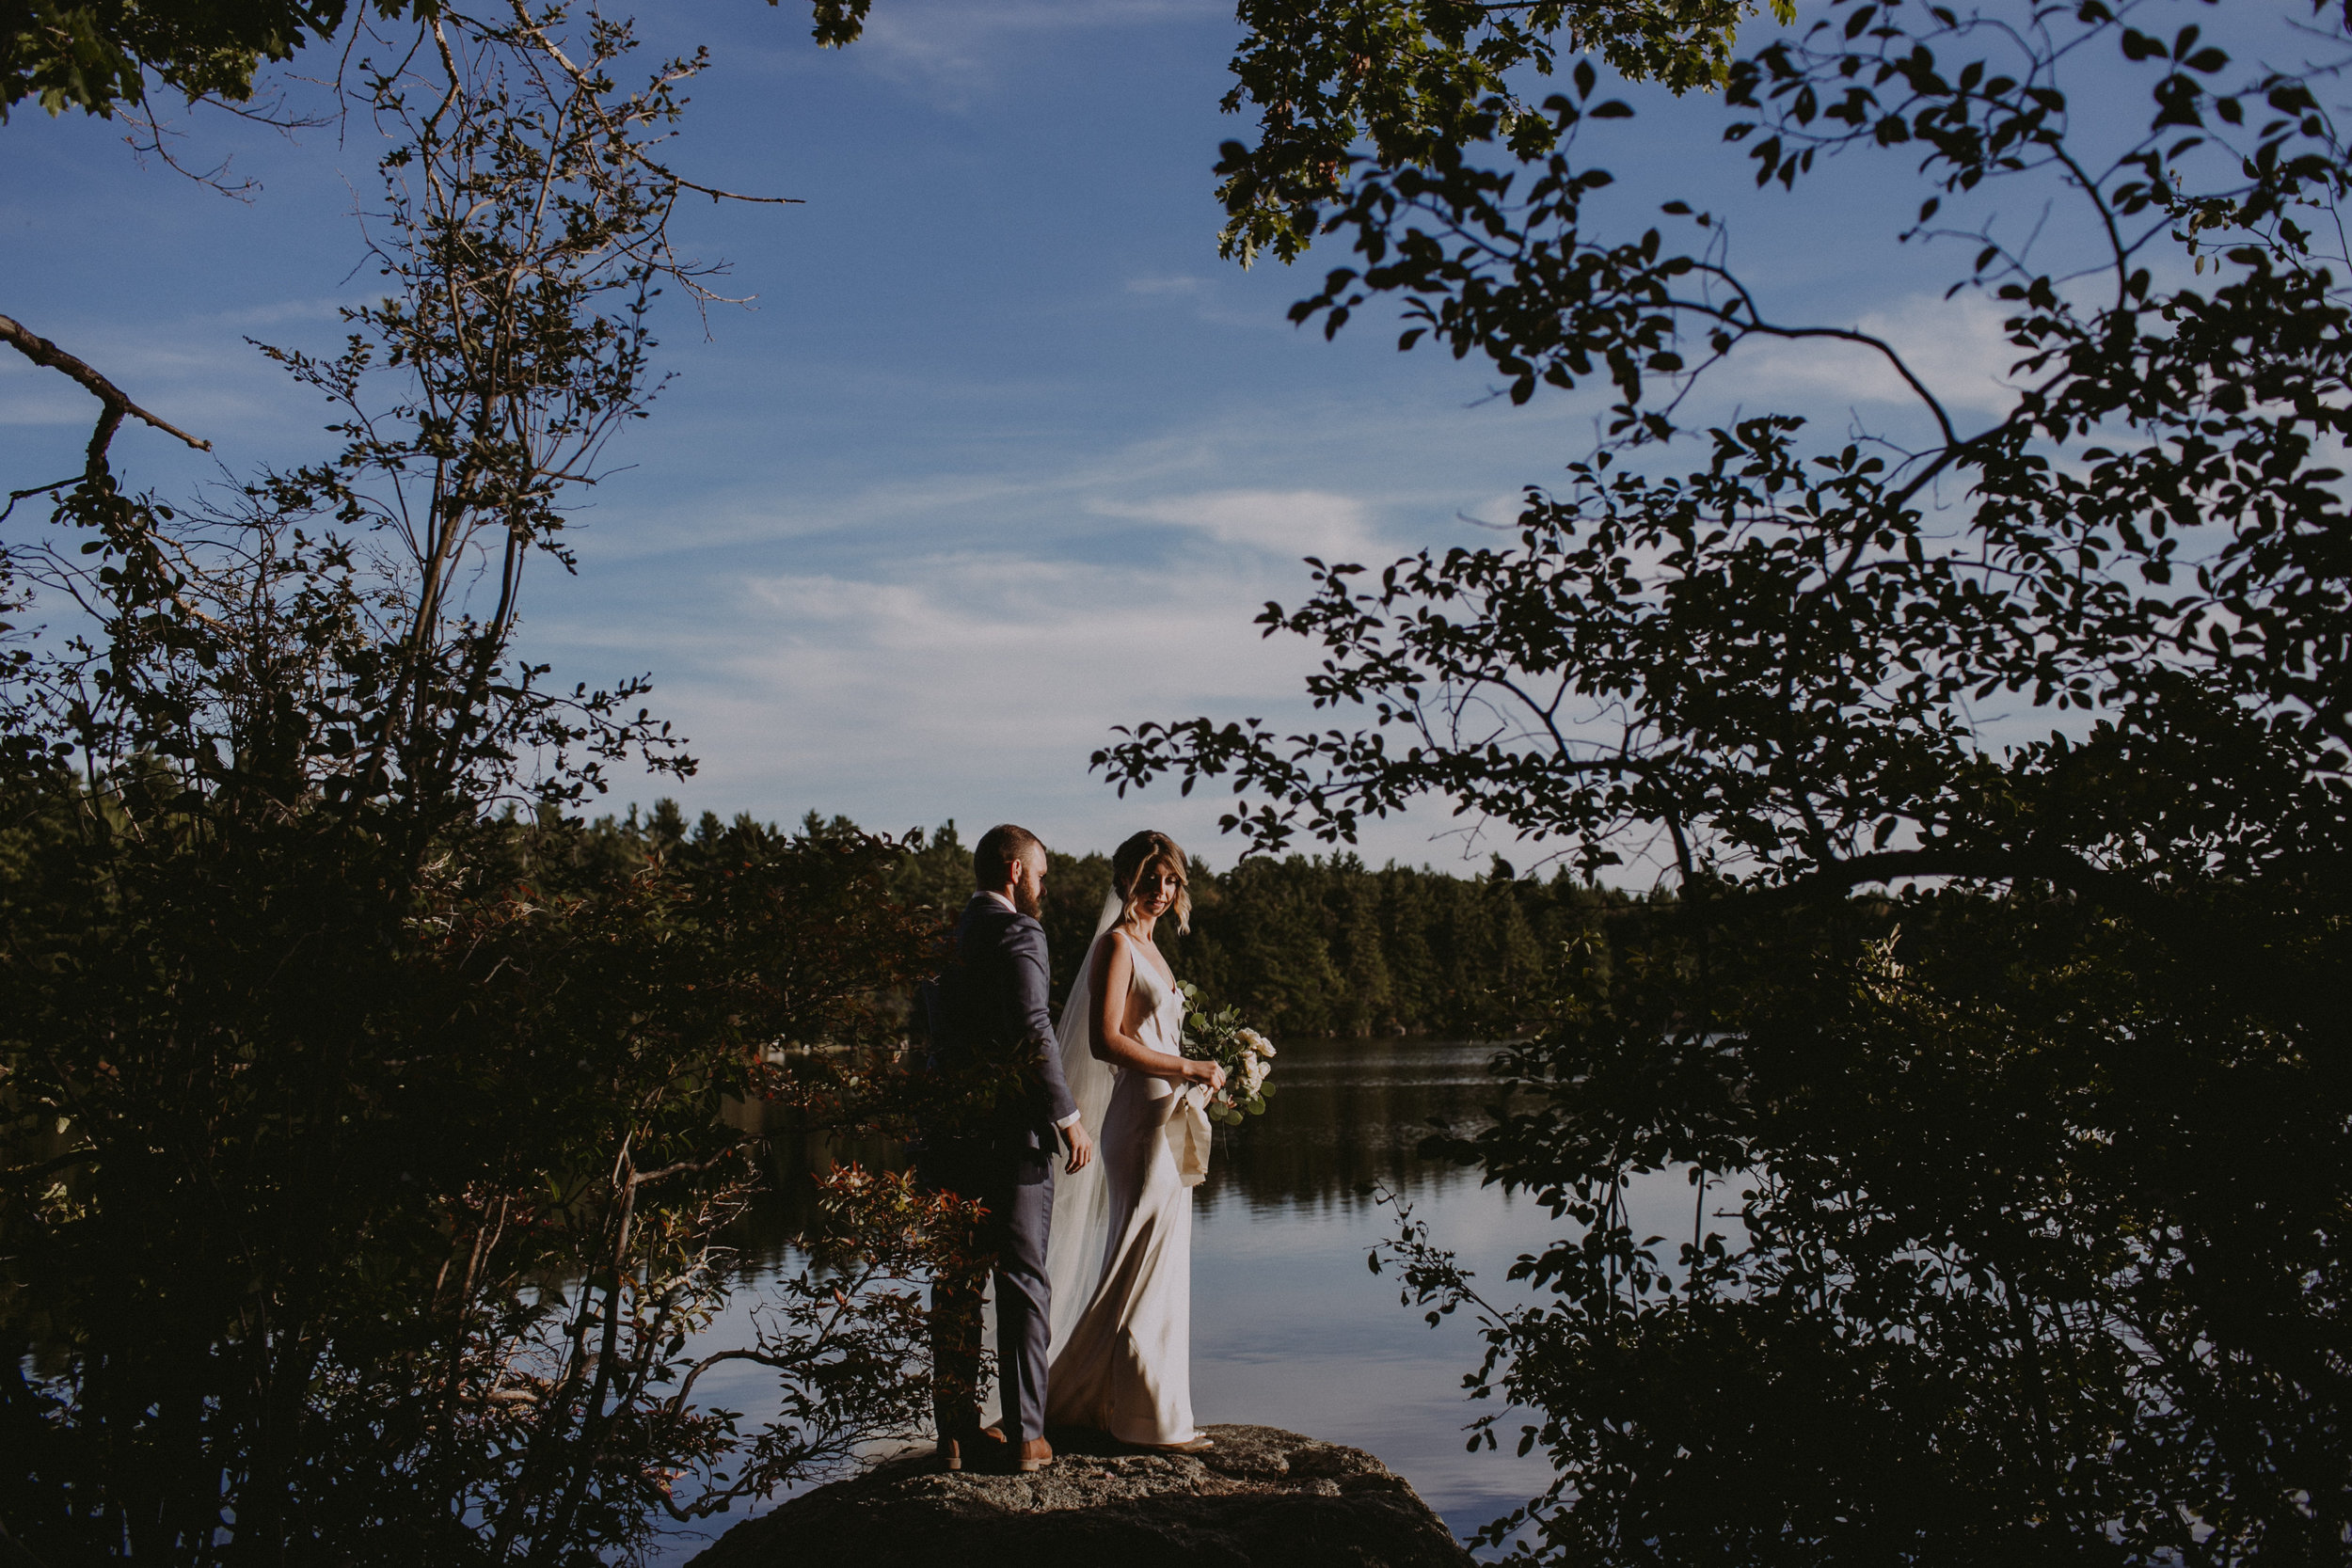 windsor mountain summer camp wedding NH chellise michael photography 1788.jpg